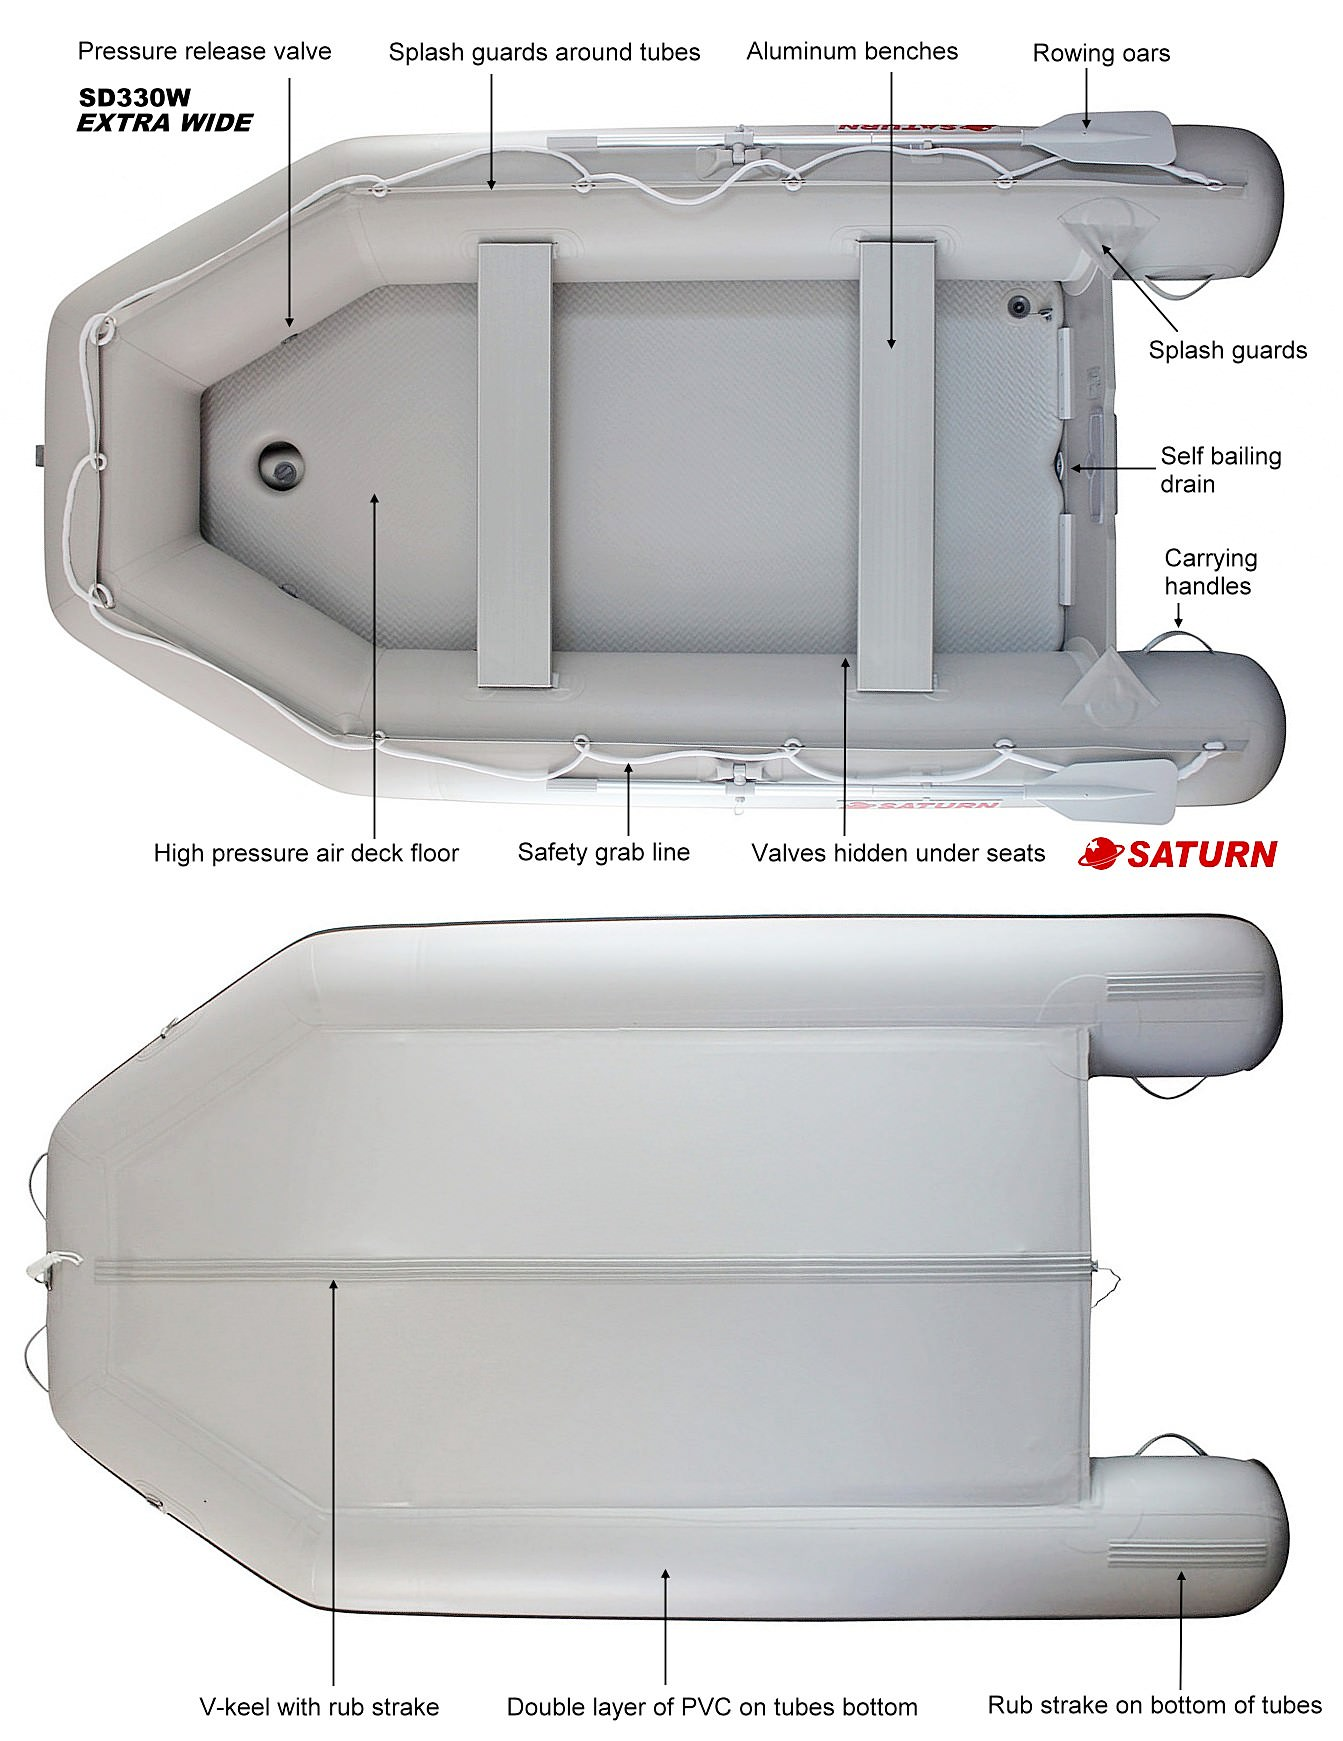 Saturn Extra Wide Inflatable Boat SD330W Specifications